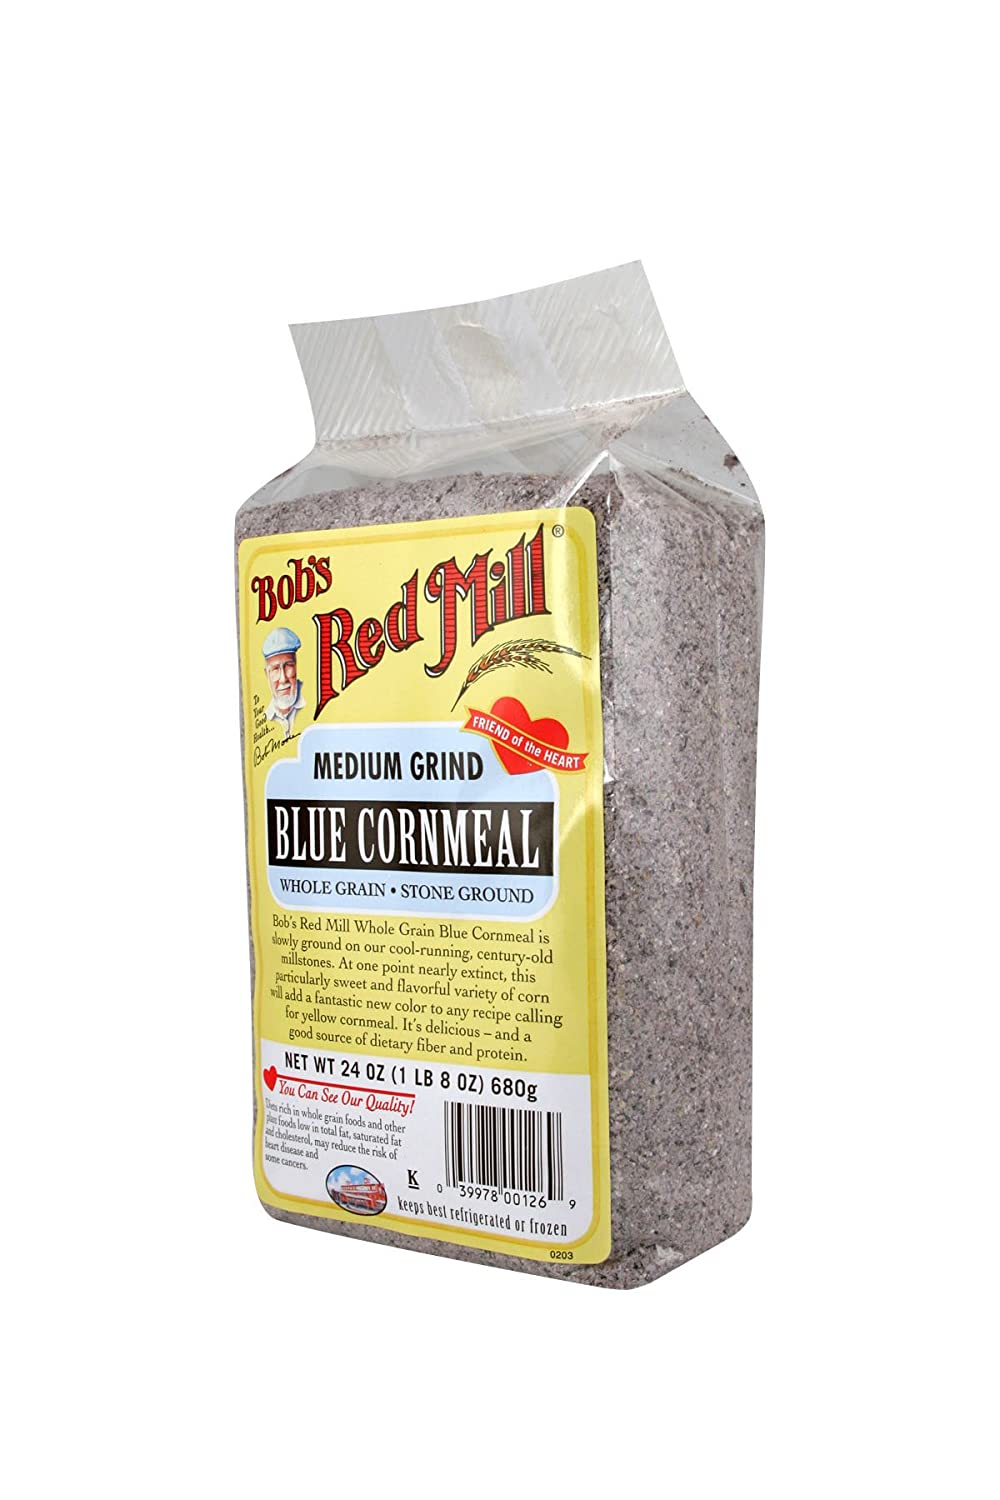 Amazon.com : Bobs Red Mill Blue Cornmeal, 24-ounce : Grocery & Gourmet Food